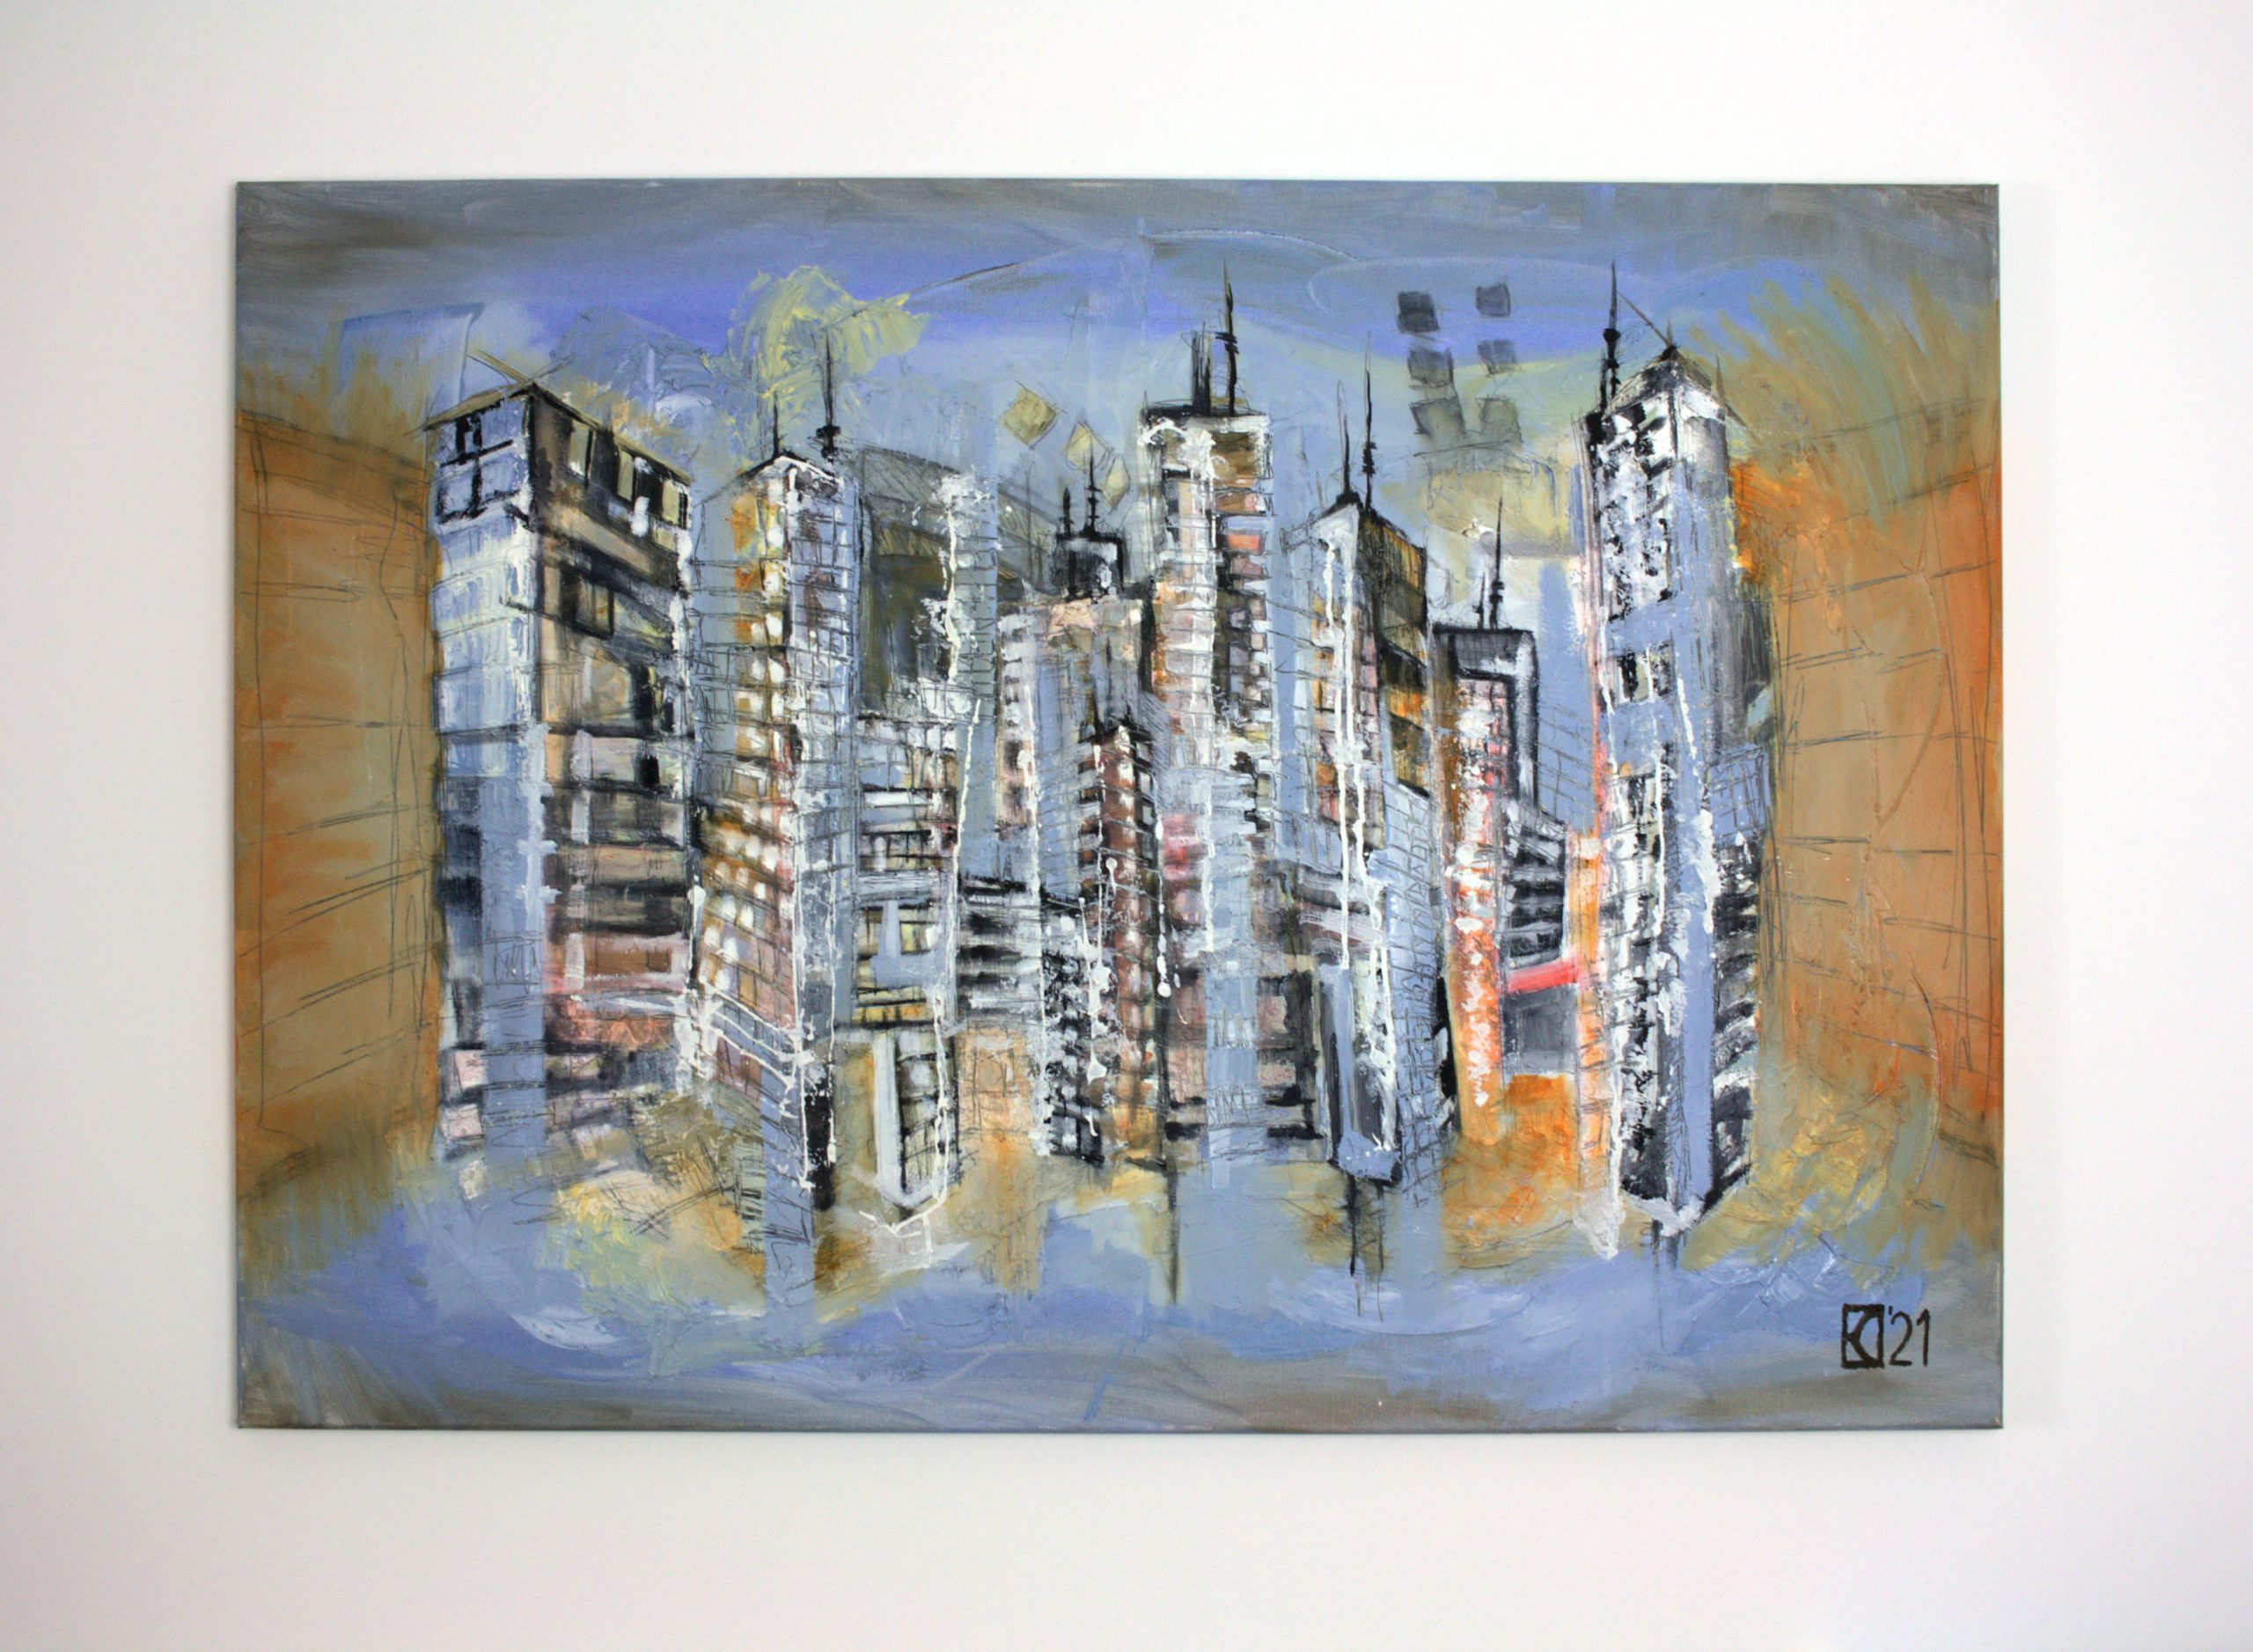 City district by Stefan Eisele - Oil on canvas